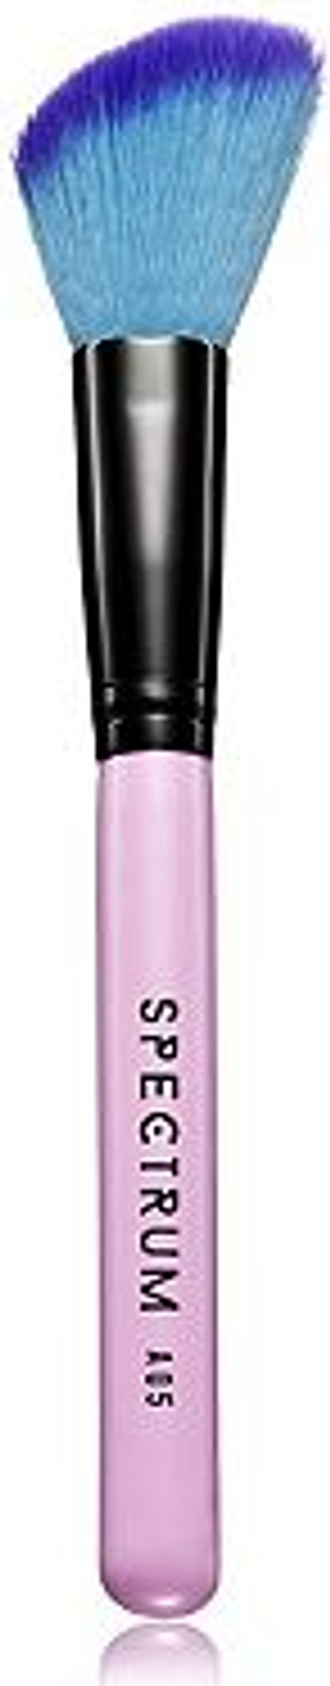 Spectrum Collections Pink A05 Precision Blush Brush